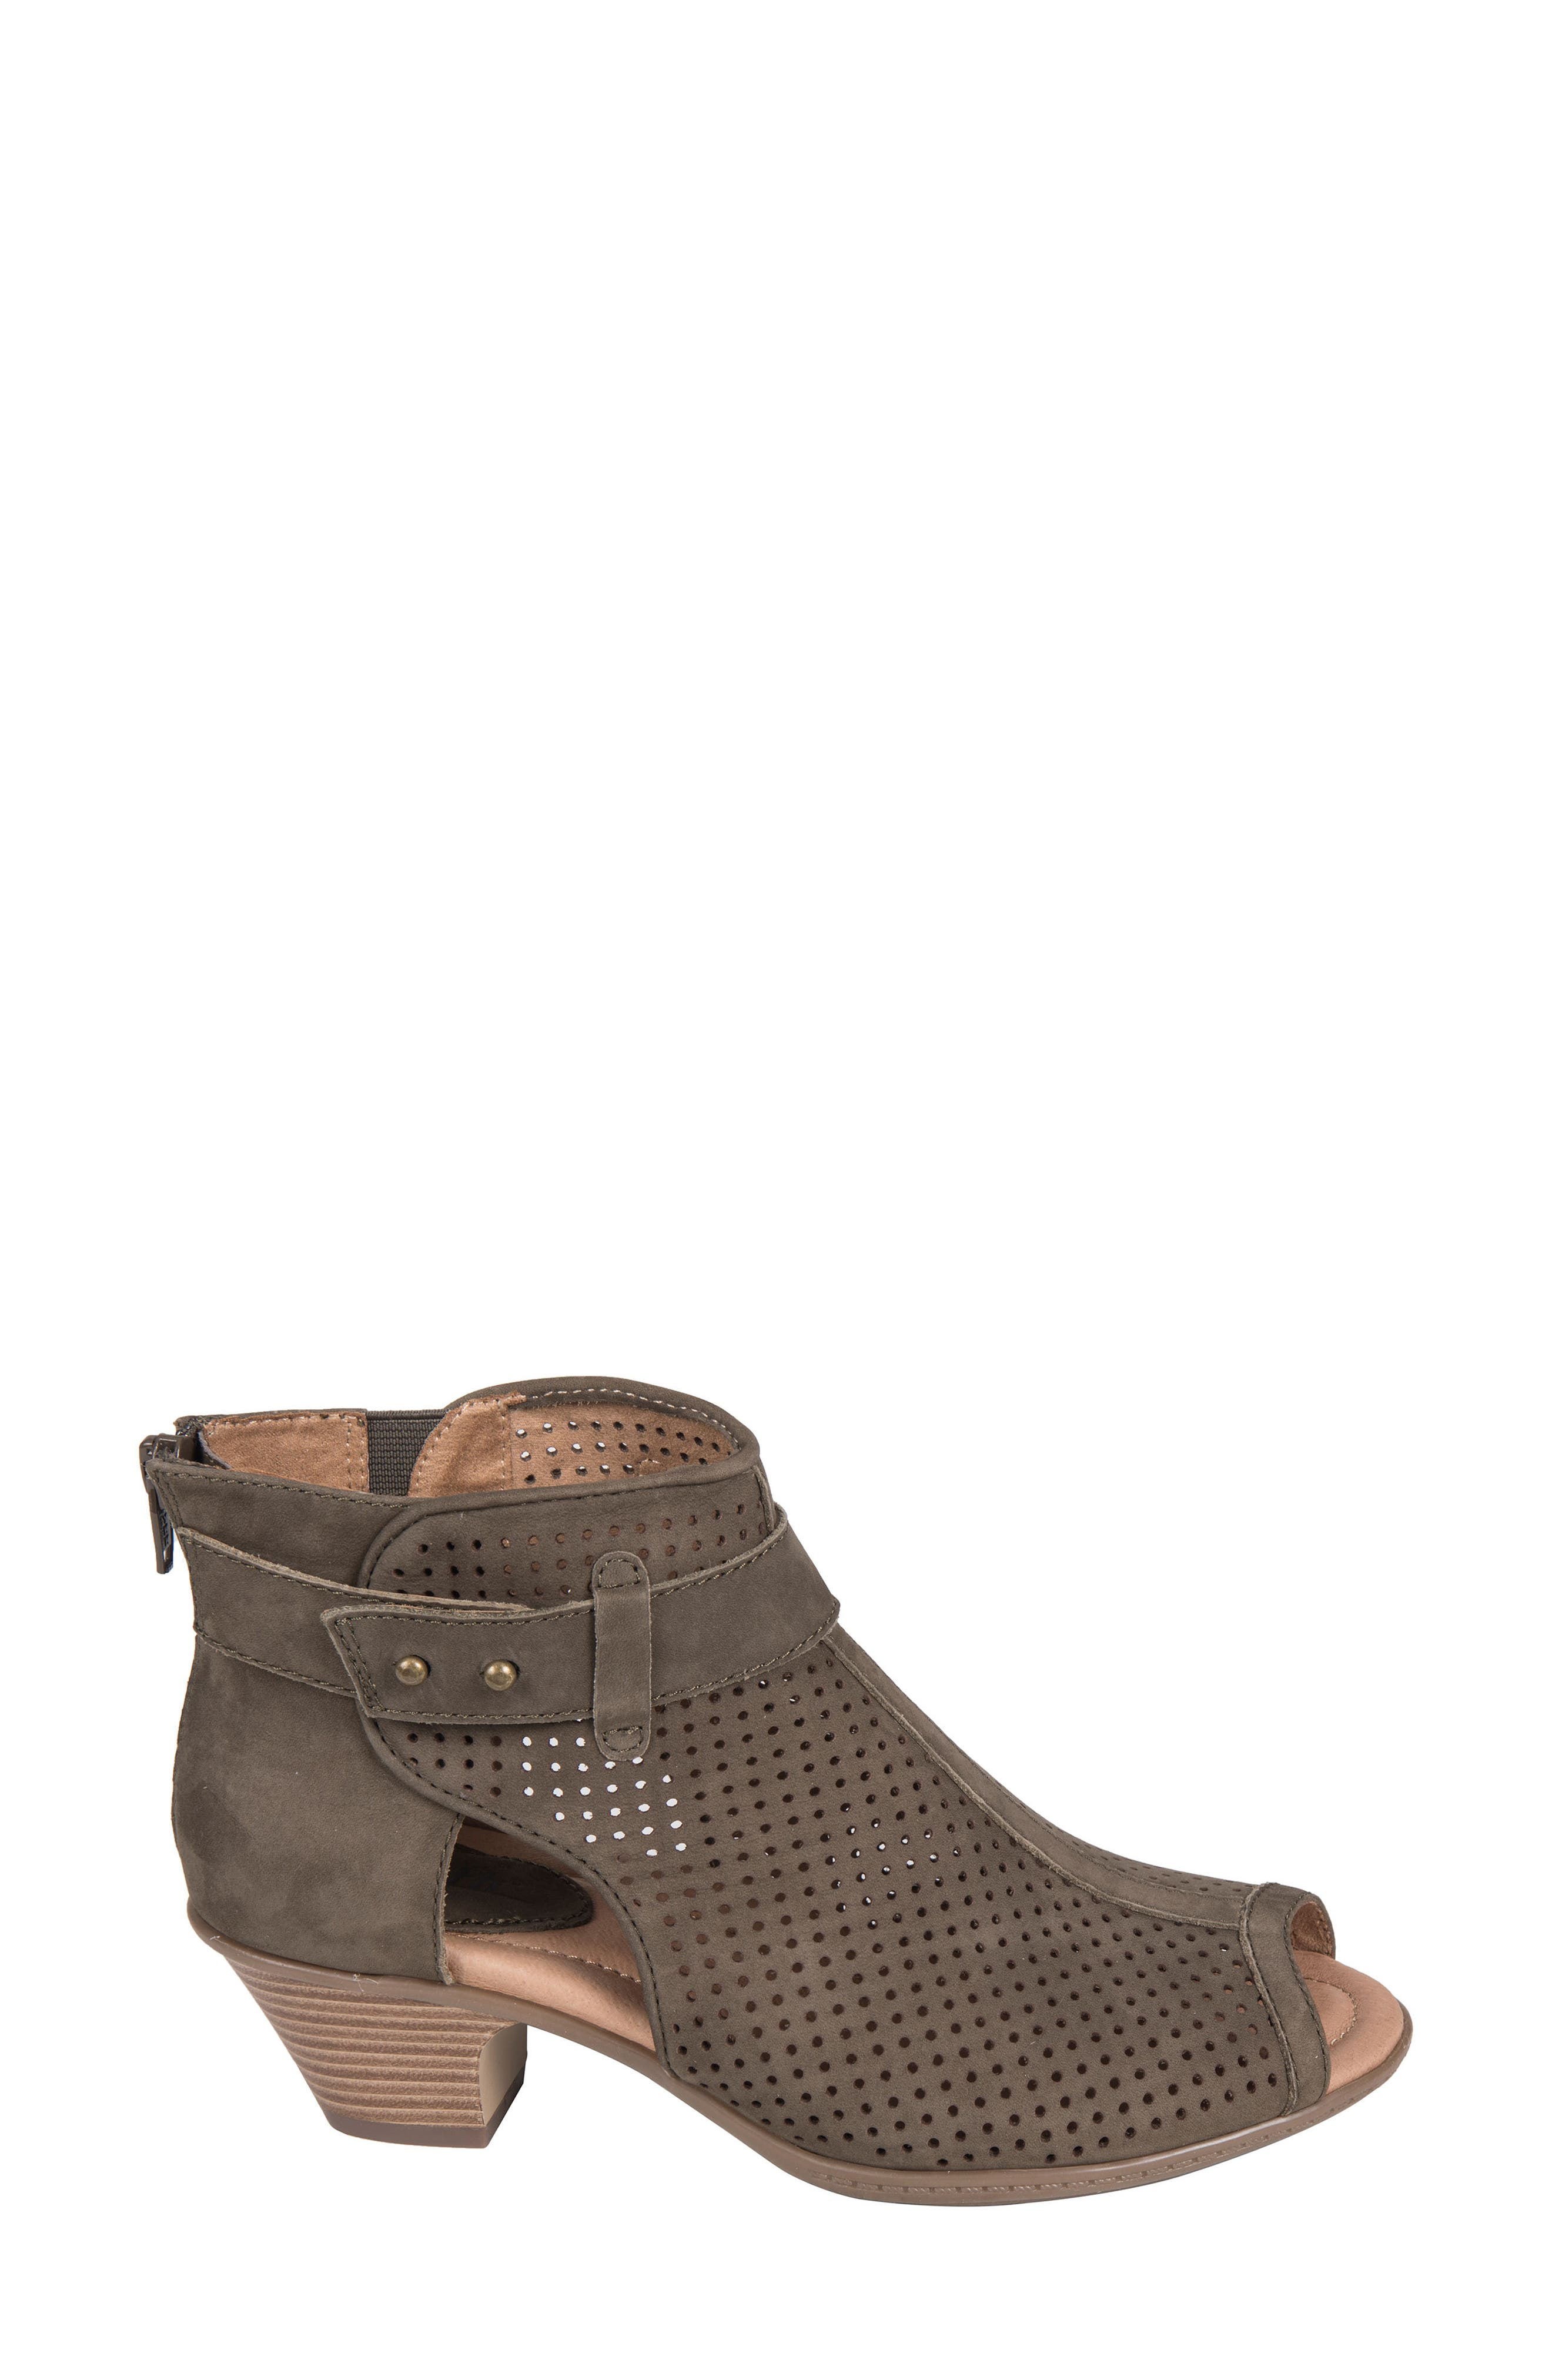 Intrepid Peep Toe Bootie,                             Alternate thumbnail 3, color,                             DARK OLIVE NUBUCK